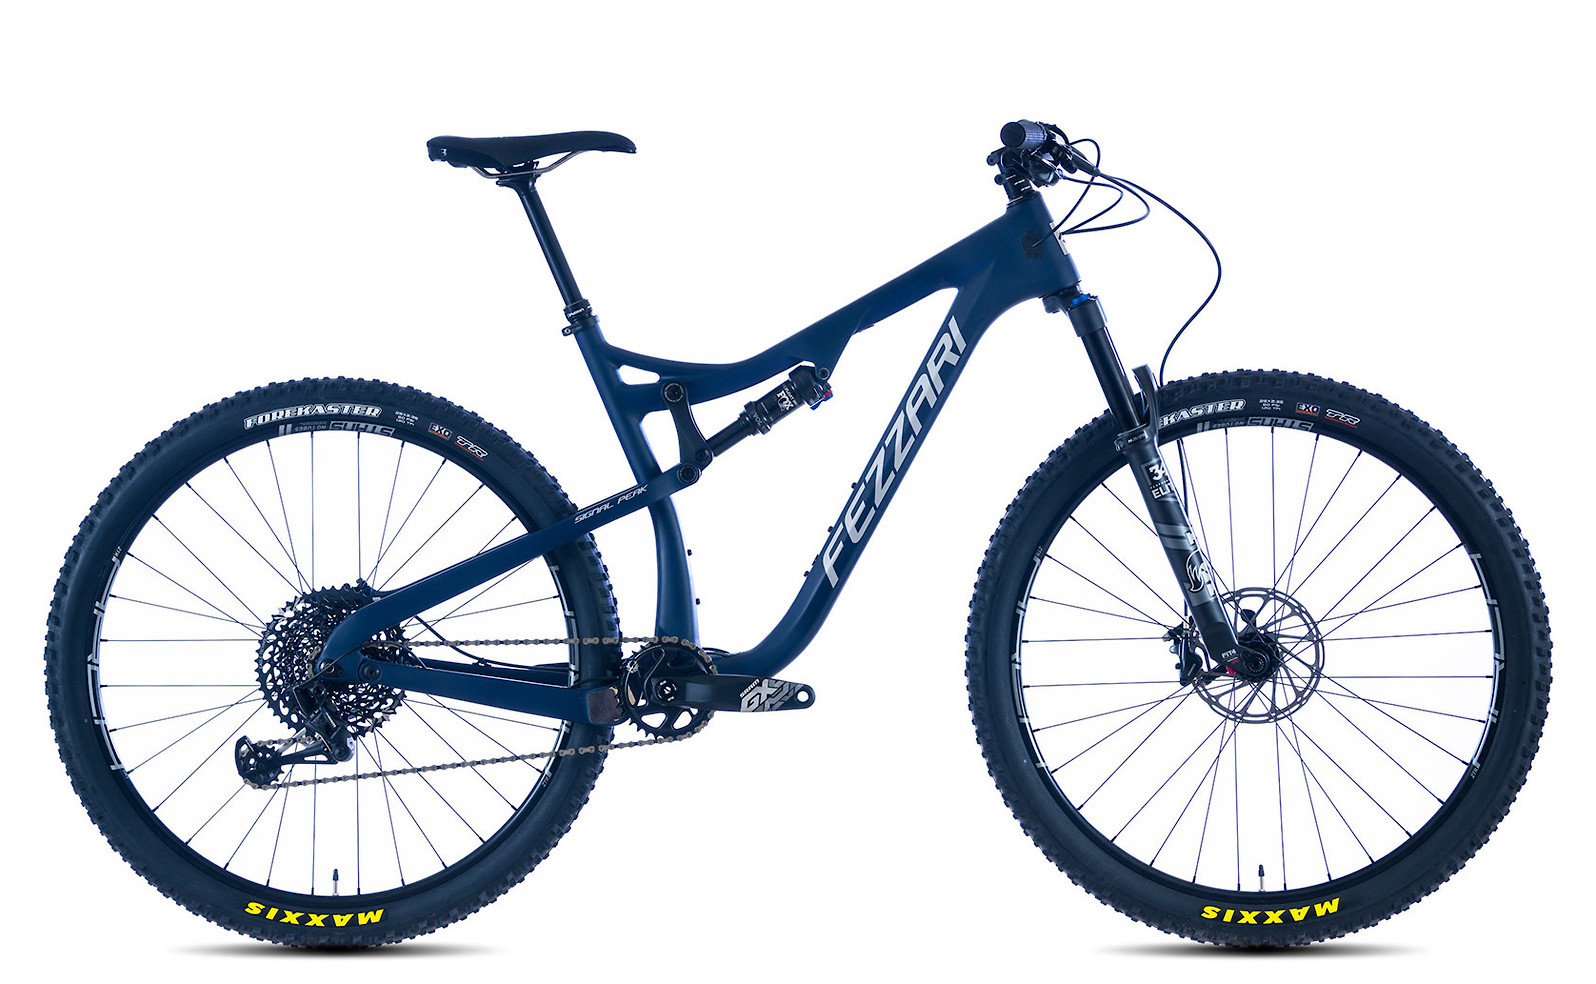 2019 Fezzari Signal Peak Elite Bike